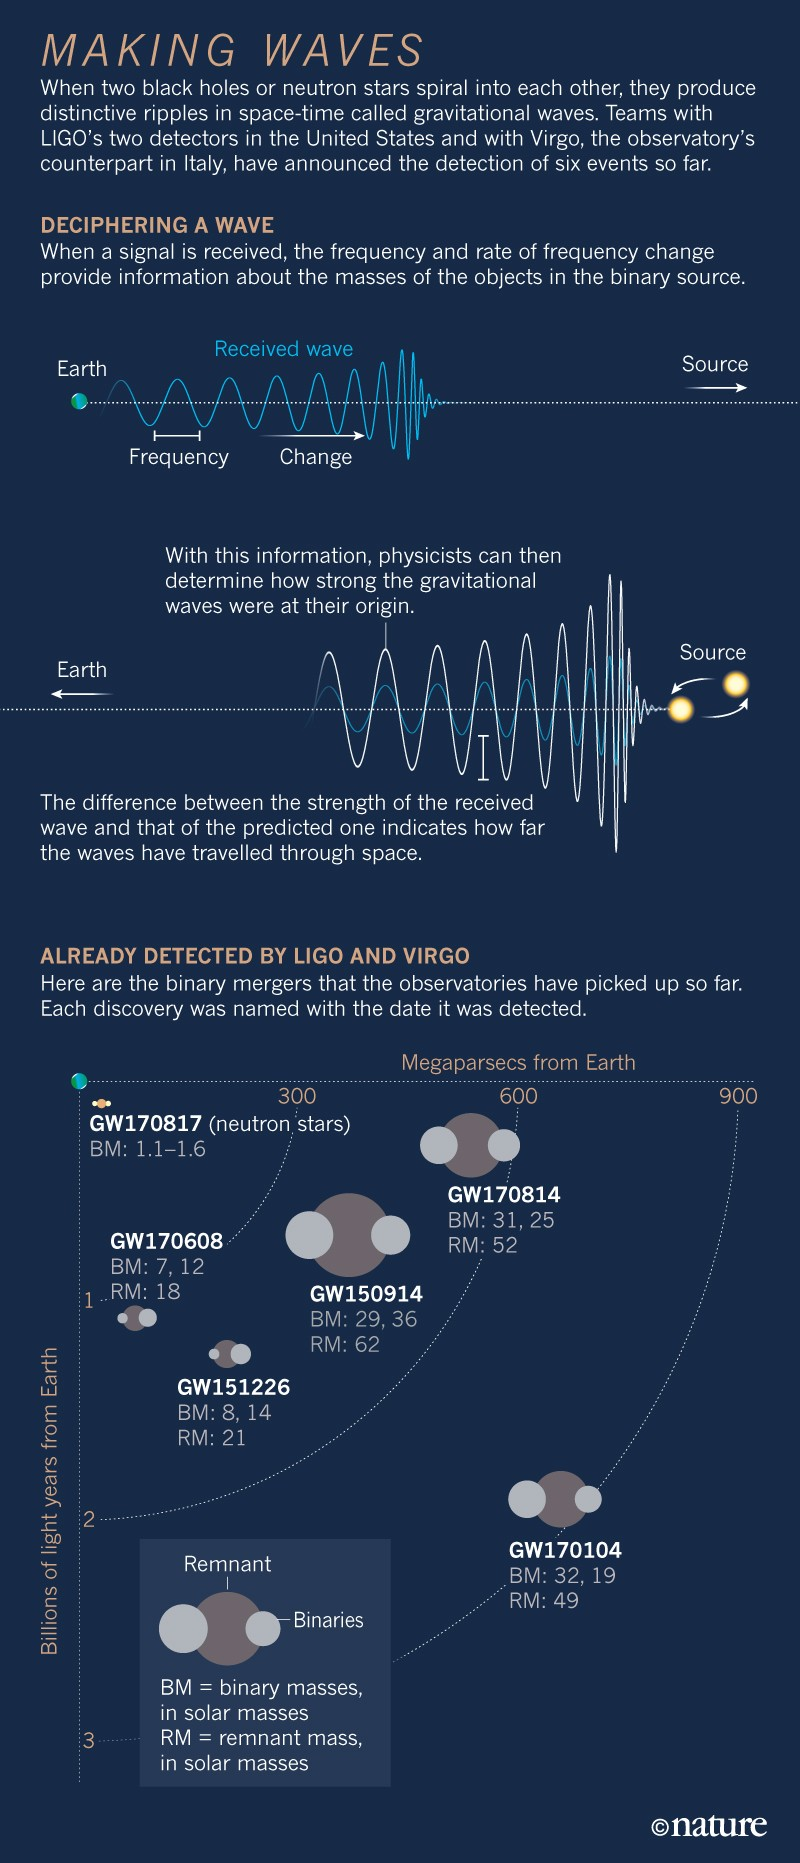 How gravitational waves could solve some of the Universe's deepest mysteries